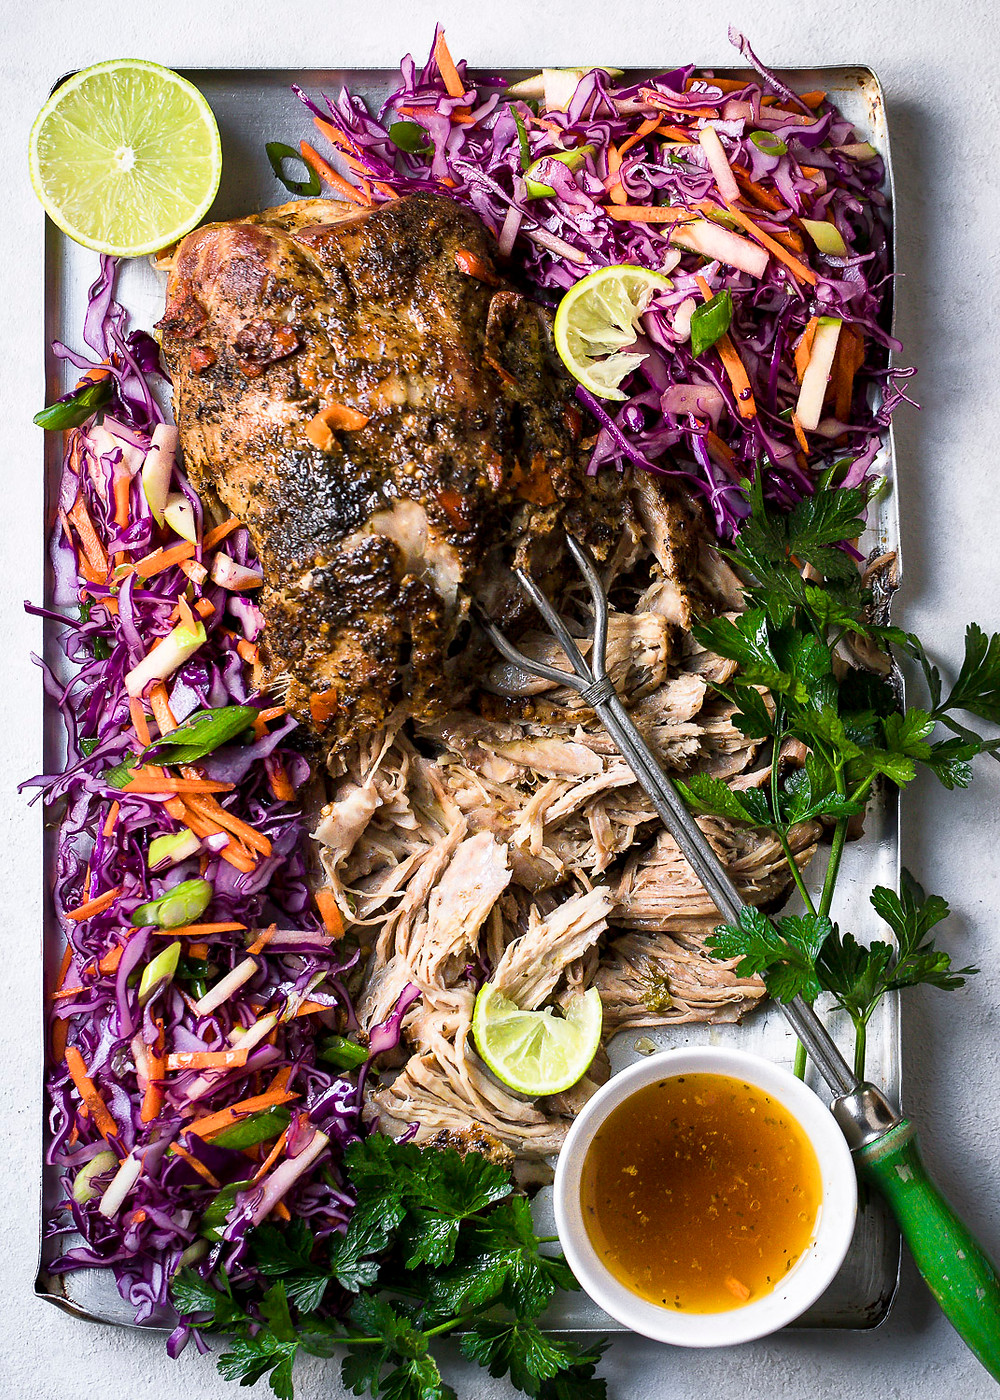 Spiced Pulled Pork with Red Cabbage and Apple Slaw